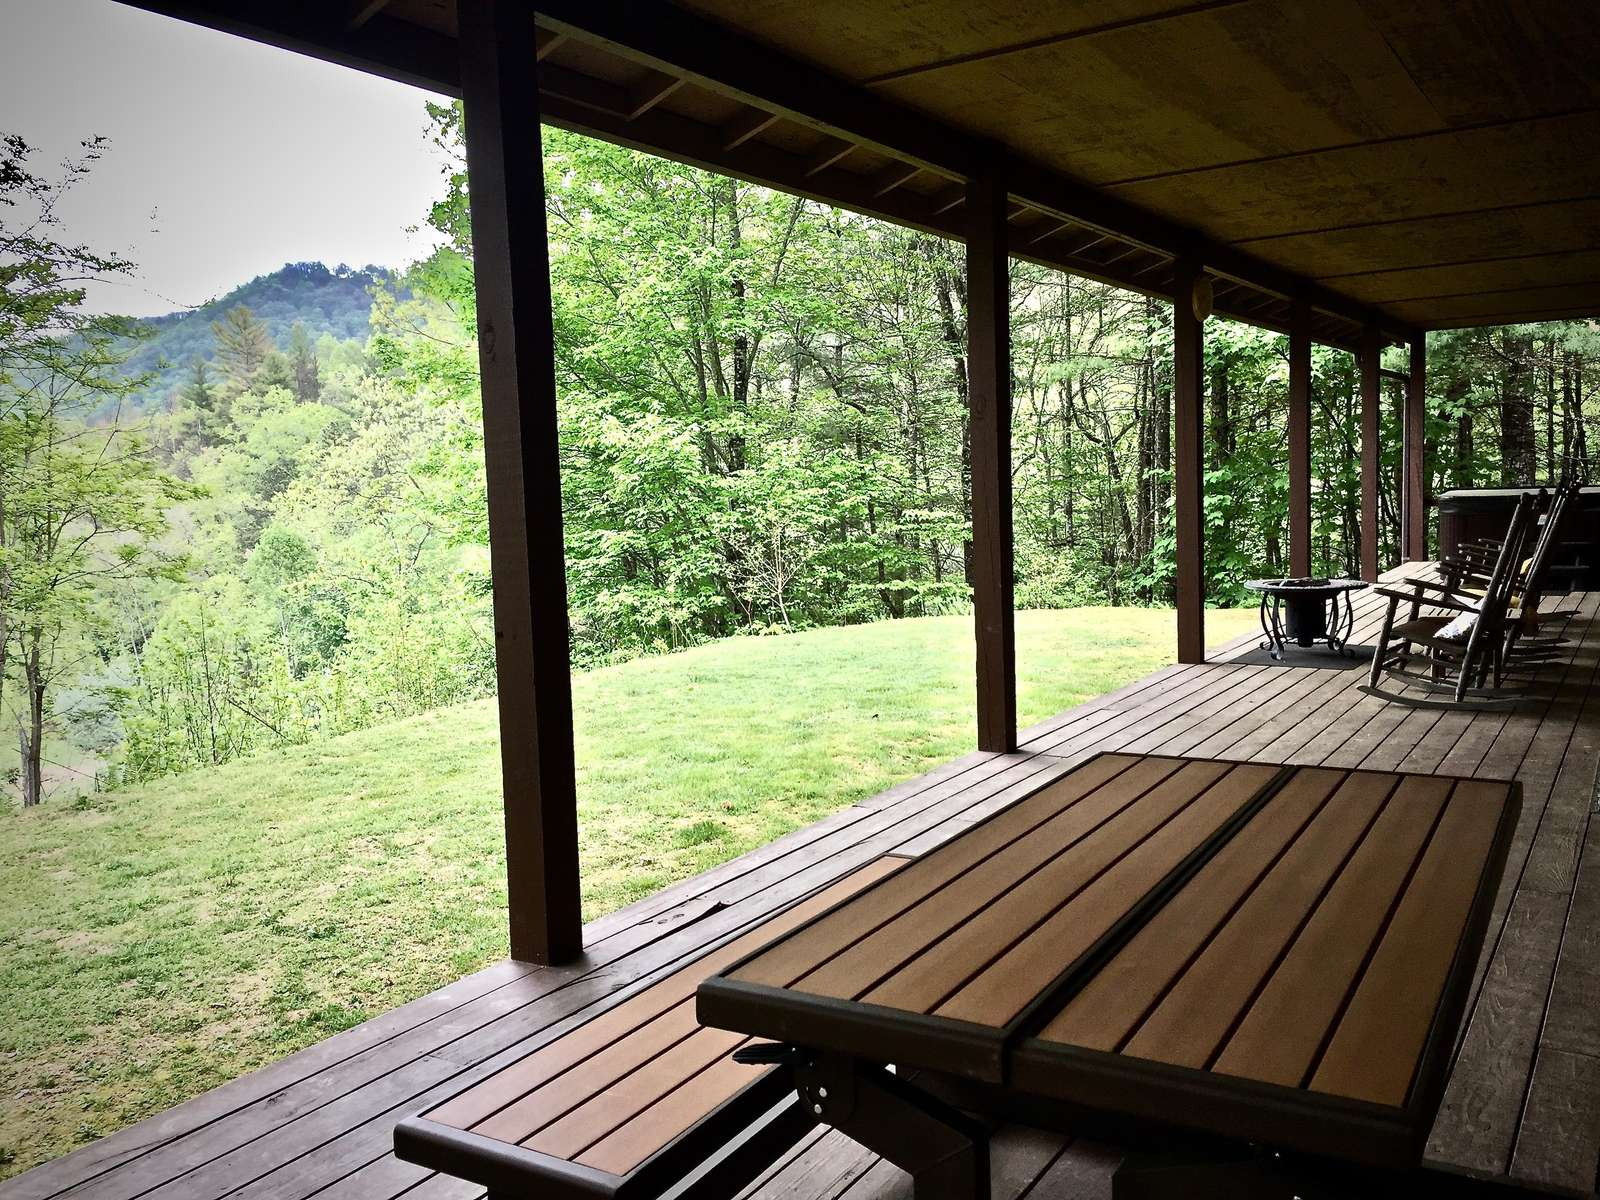 """Dine inside, or """"Al Fresco""""...PicNic Table, Several Rockers, and Lovely Views over the Pasture and Mountains beyond"""